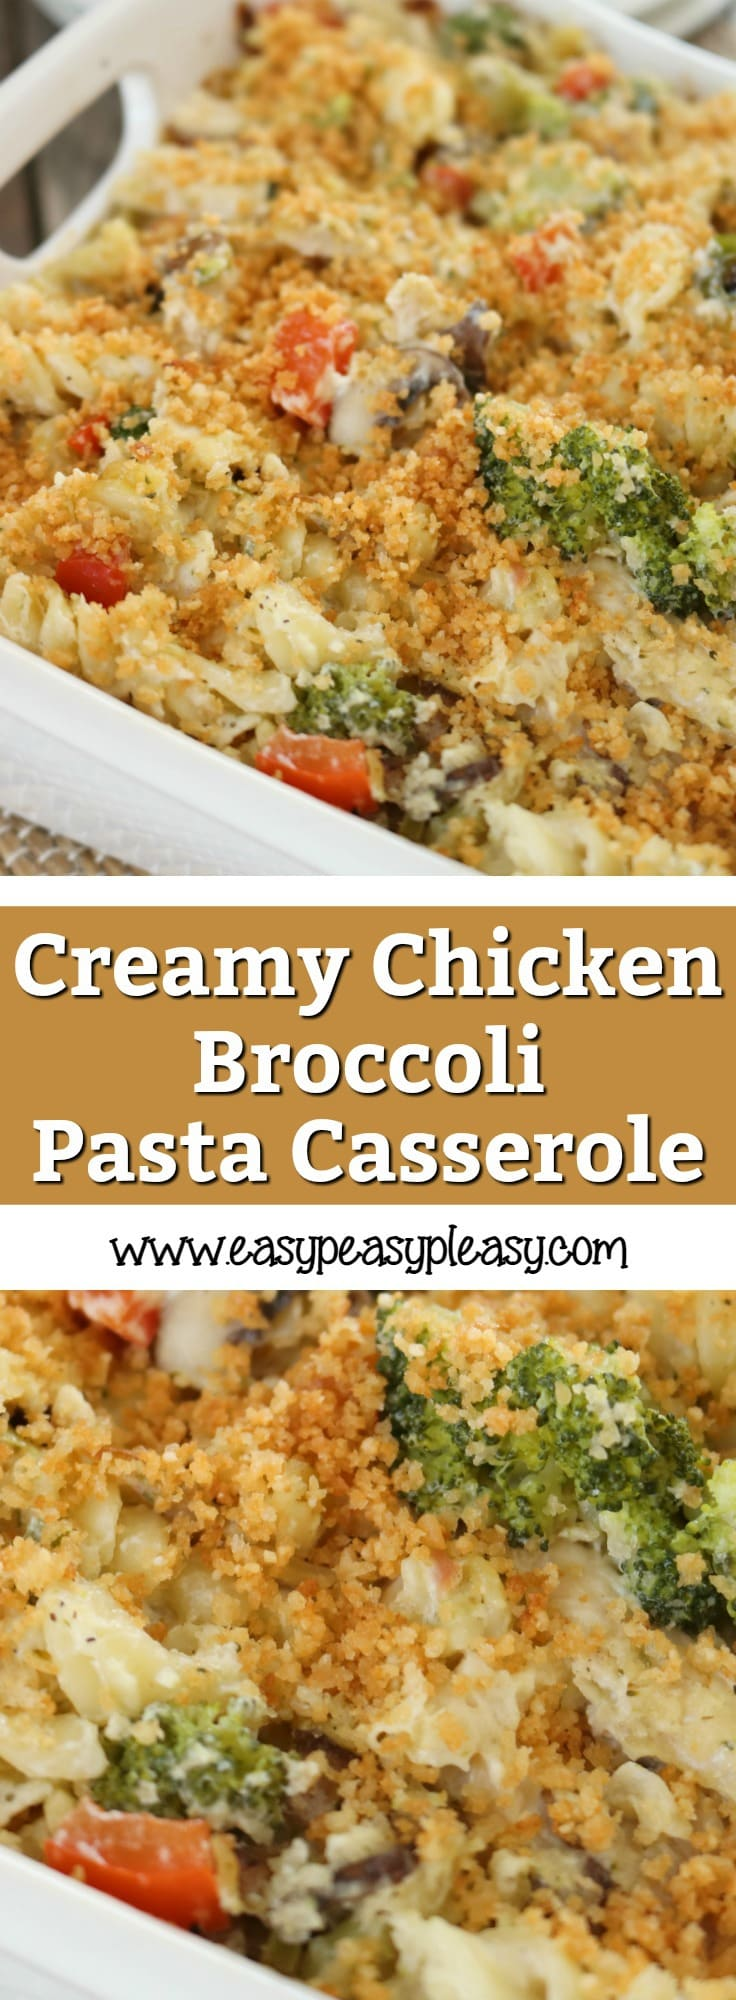 This Creamy Chicken Broccoli Casserole is the perfect addition to any potluck, family gathering, or reheated for a weeknight dinner.